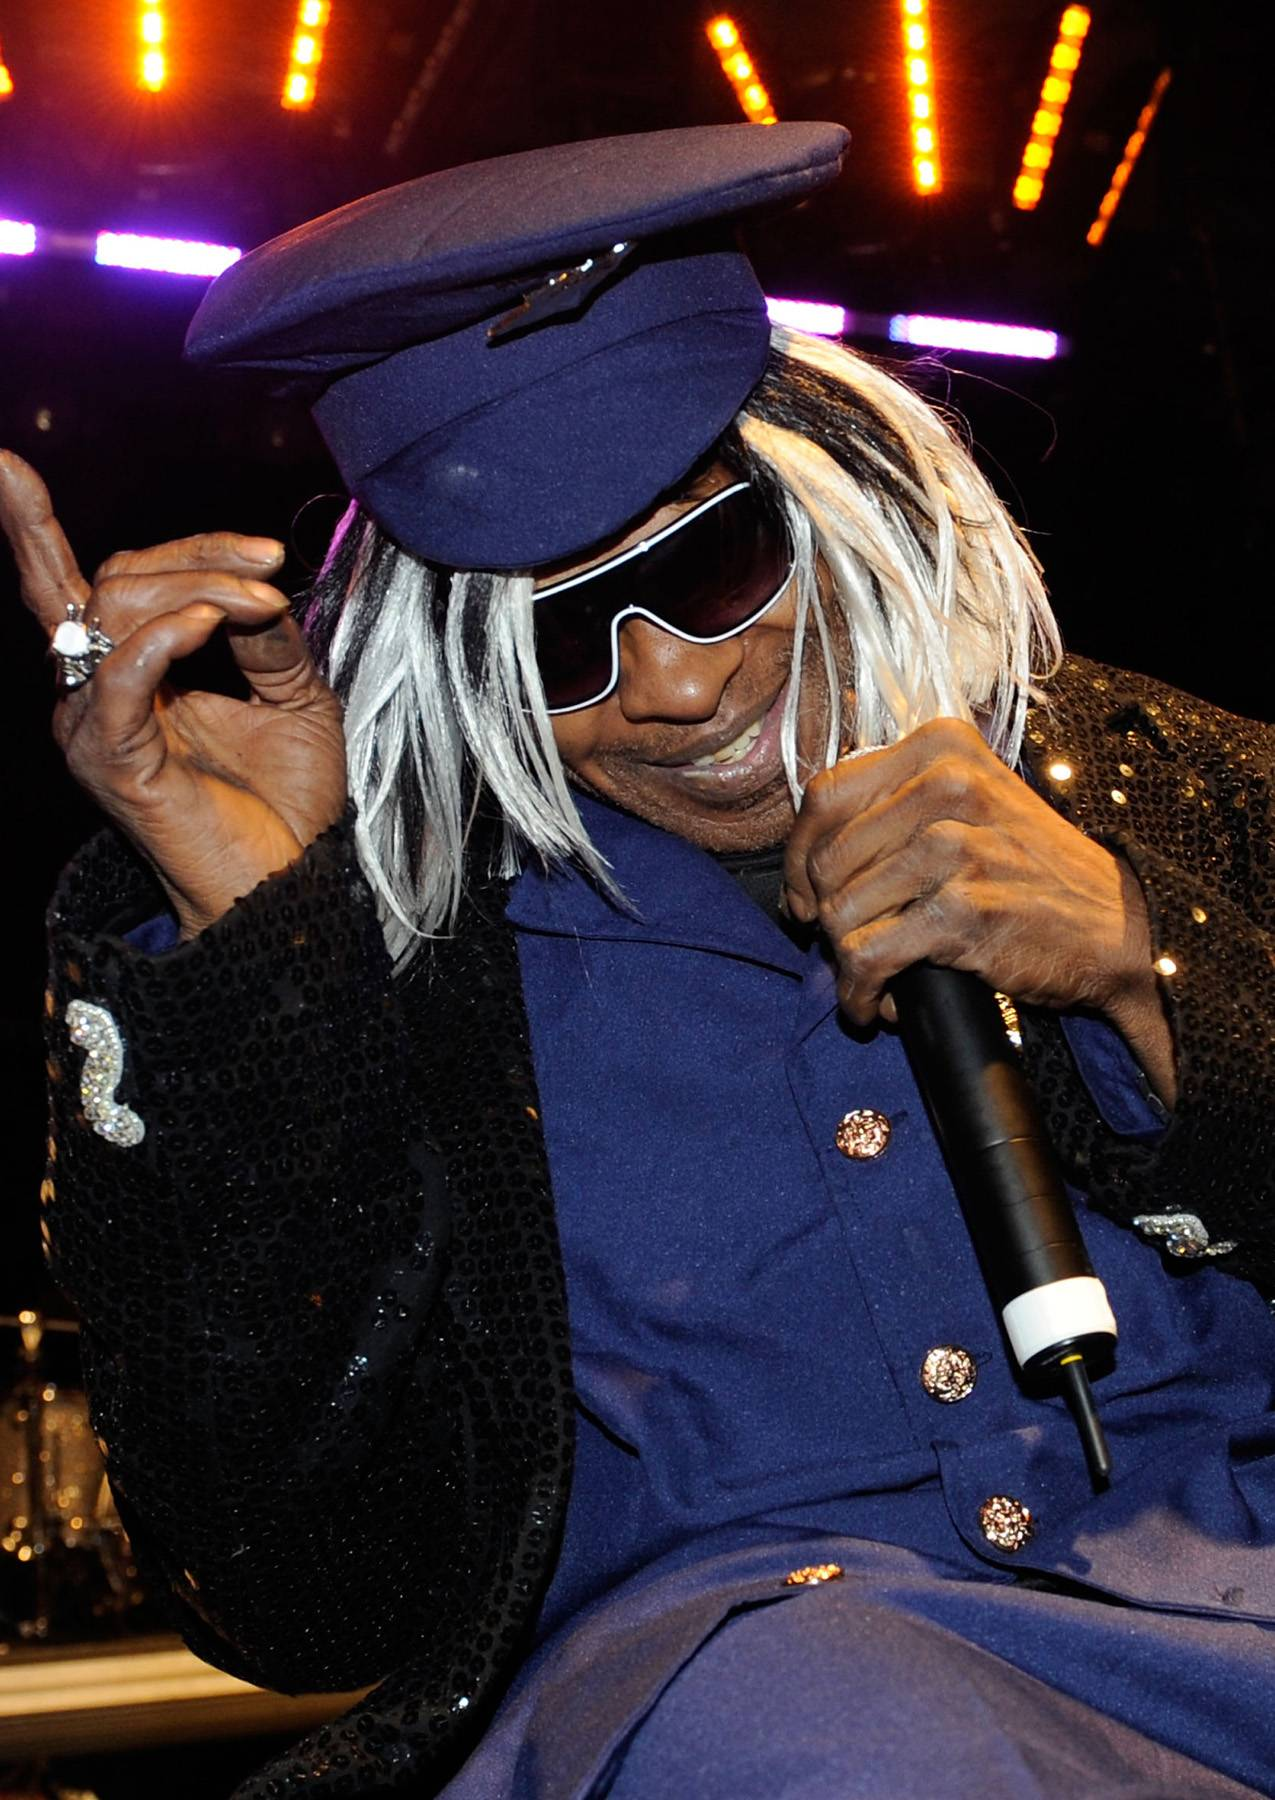 Sly Stone - Funk legend Sly Stone lost it all and in 2011 and was living in a camper. He cited being swindled out of his money by his former manager as reason for his financial displacement.(Photo: Charley Gallay/Getty Images)